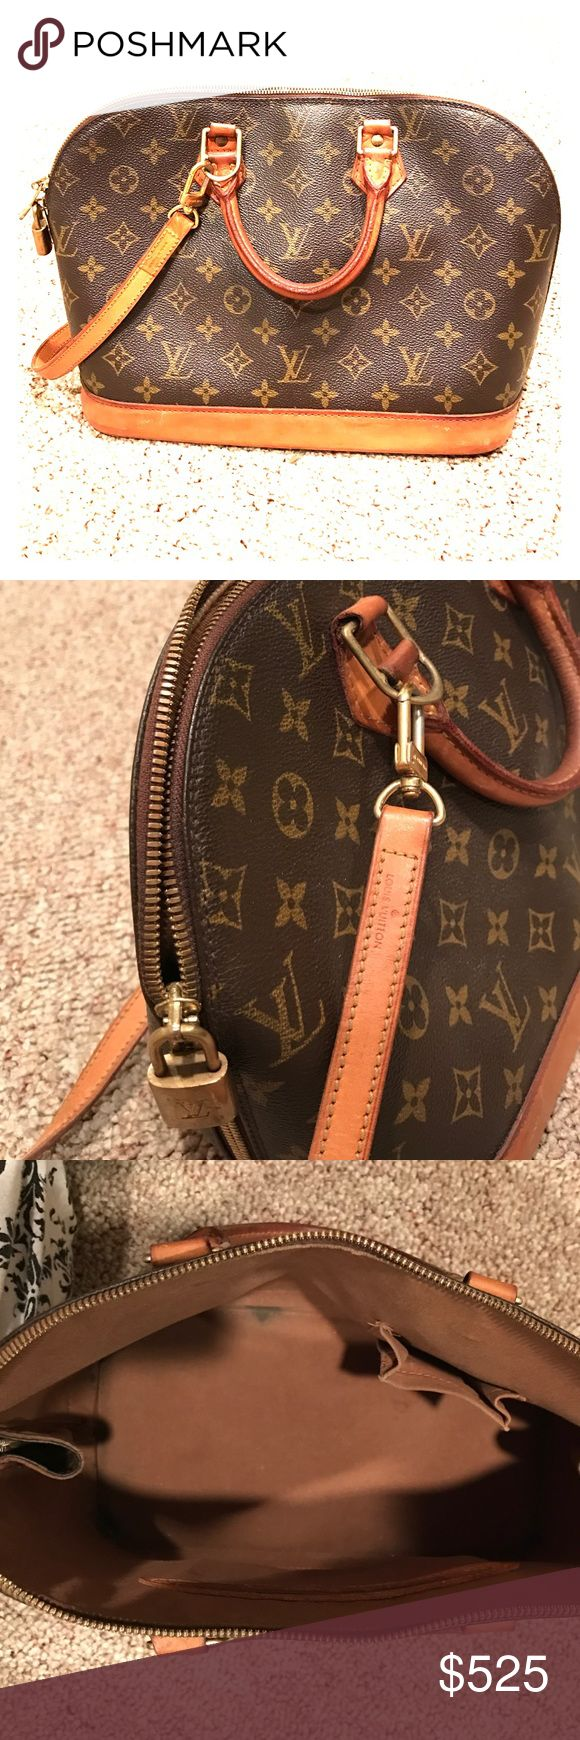 Louis Vuitton Alma Bag LOUIS VITTON Vintage traditional monogram Alma PM bag . 100% authentic LV. Leather top handles with brass links. Zipper closure on top. Removable leather straps. LV lock attached. Great condition, only minor flaws from normal use. (Excluded from bundle discount) Louis Vuitton Bags Totes